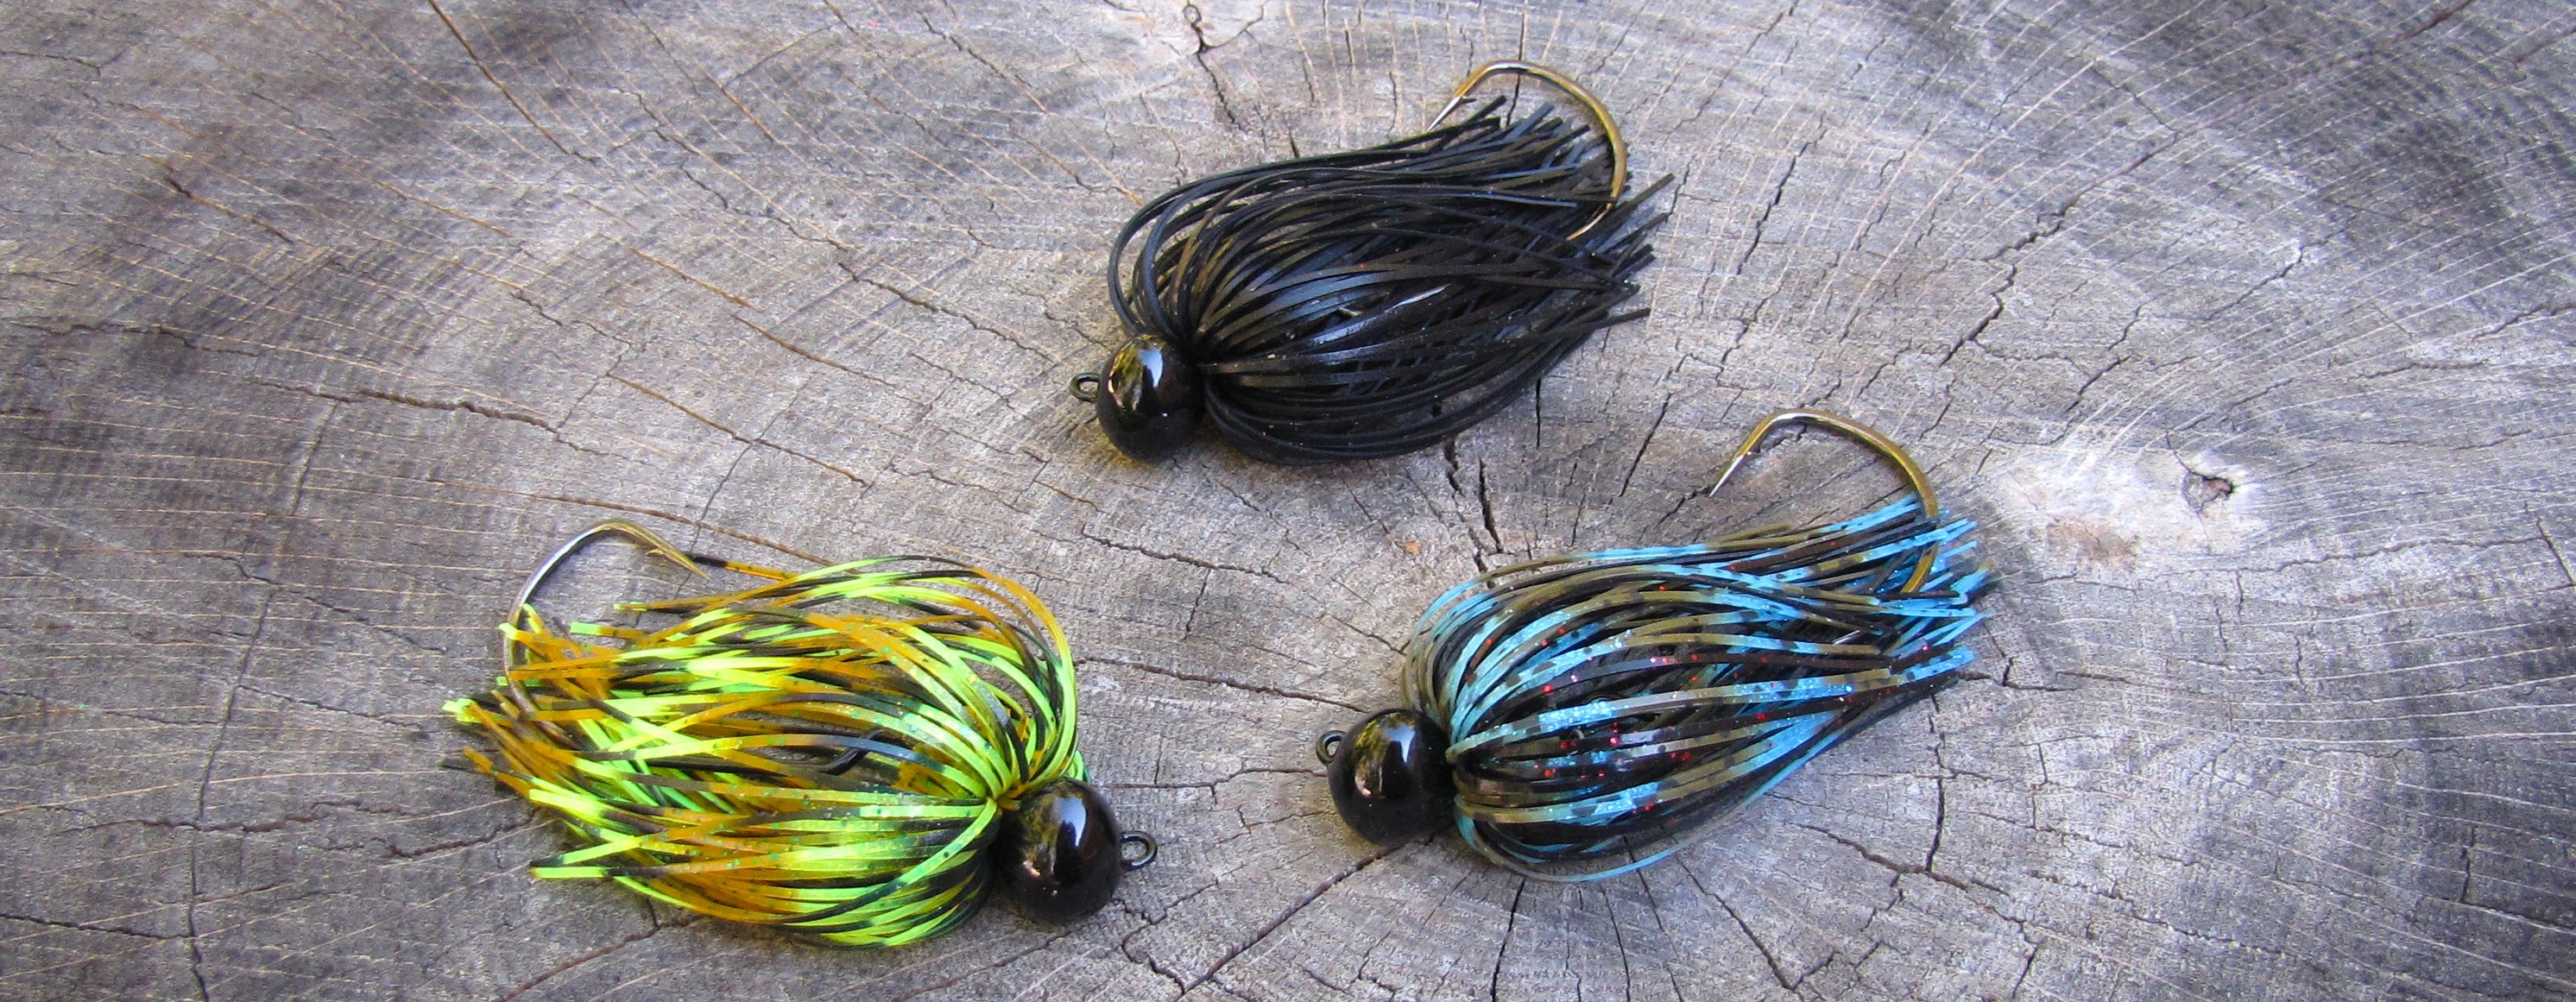 Fishing Frugal Lures Wobble Head Jigs